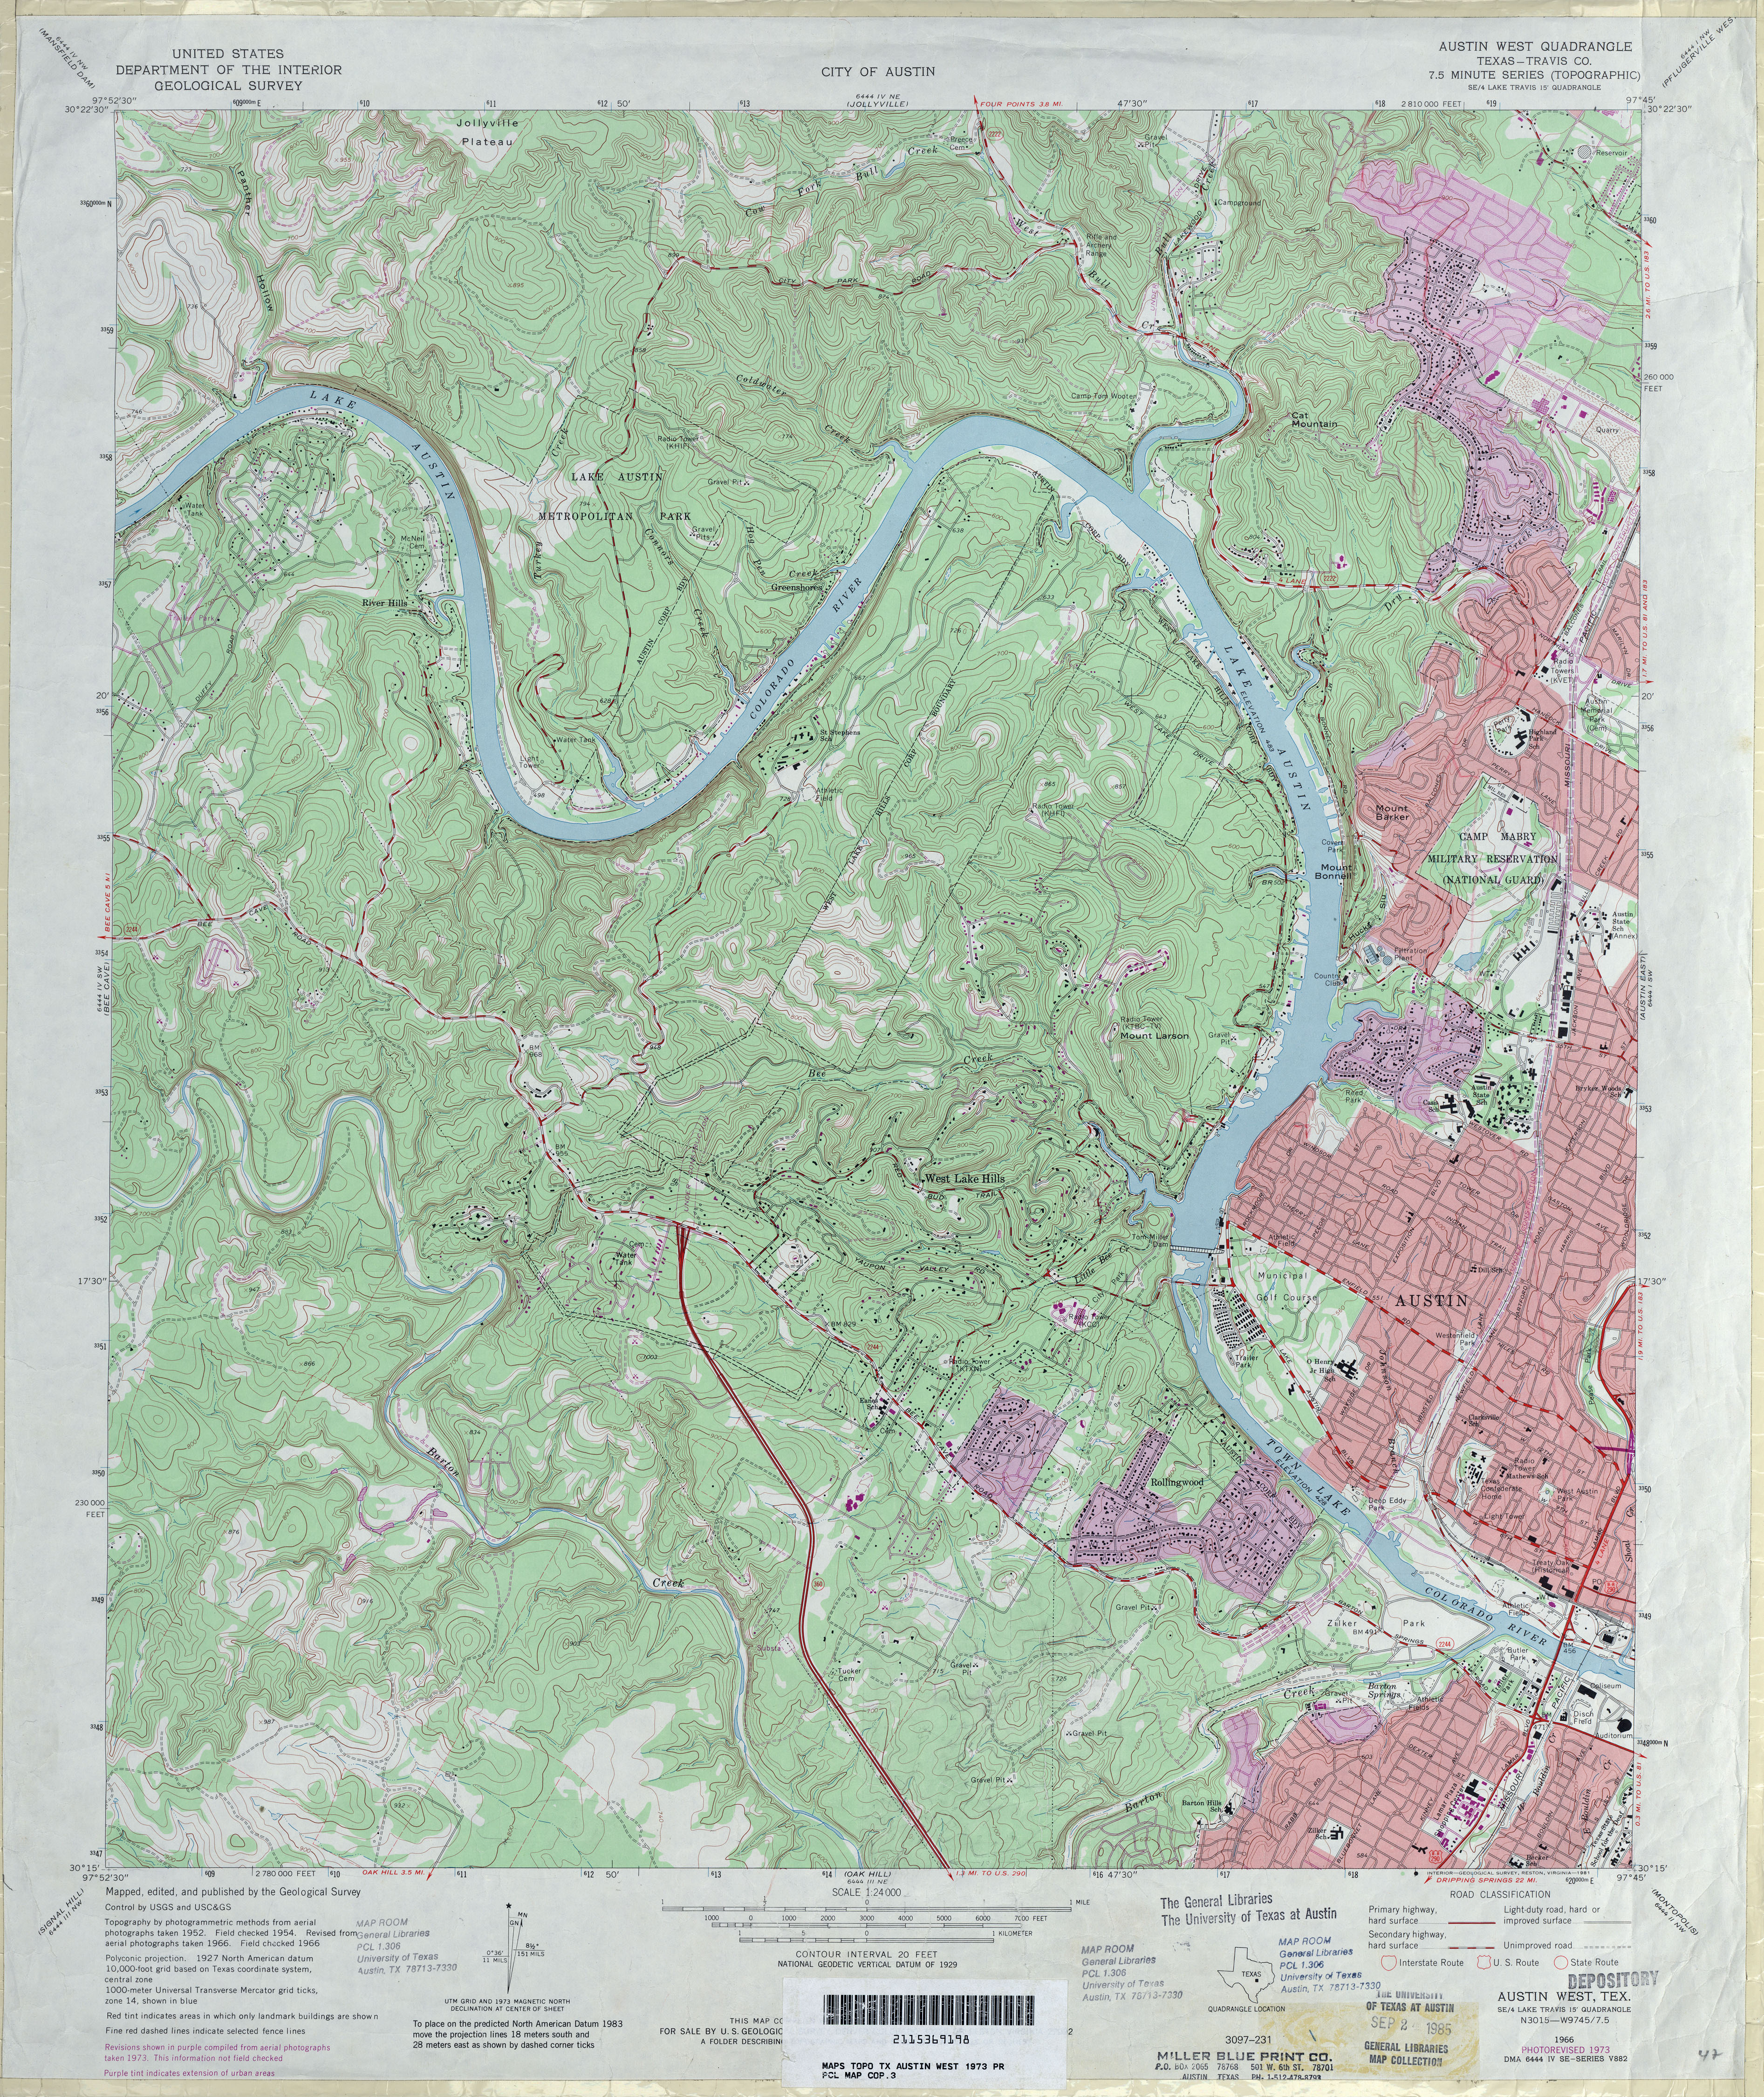 Austin, Texas Topographic Maps   Perry Castañeda Map Collection